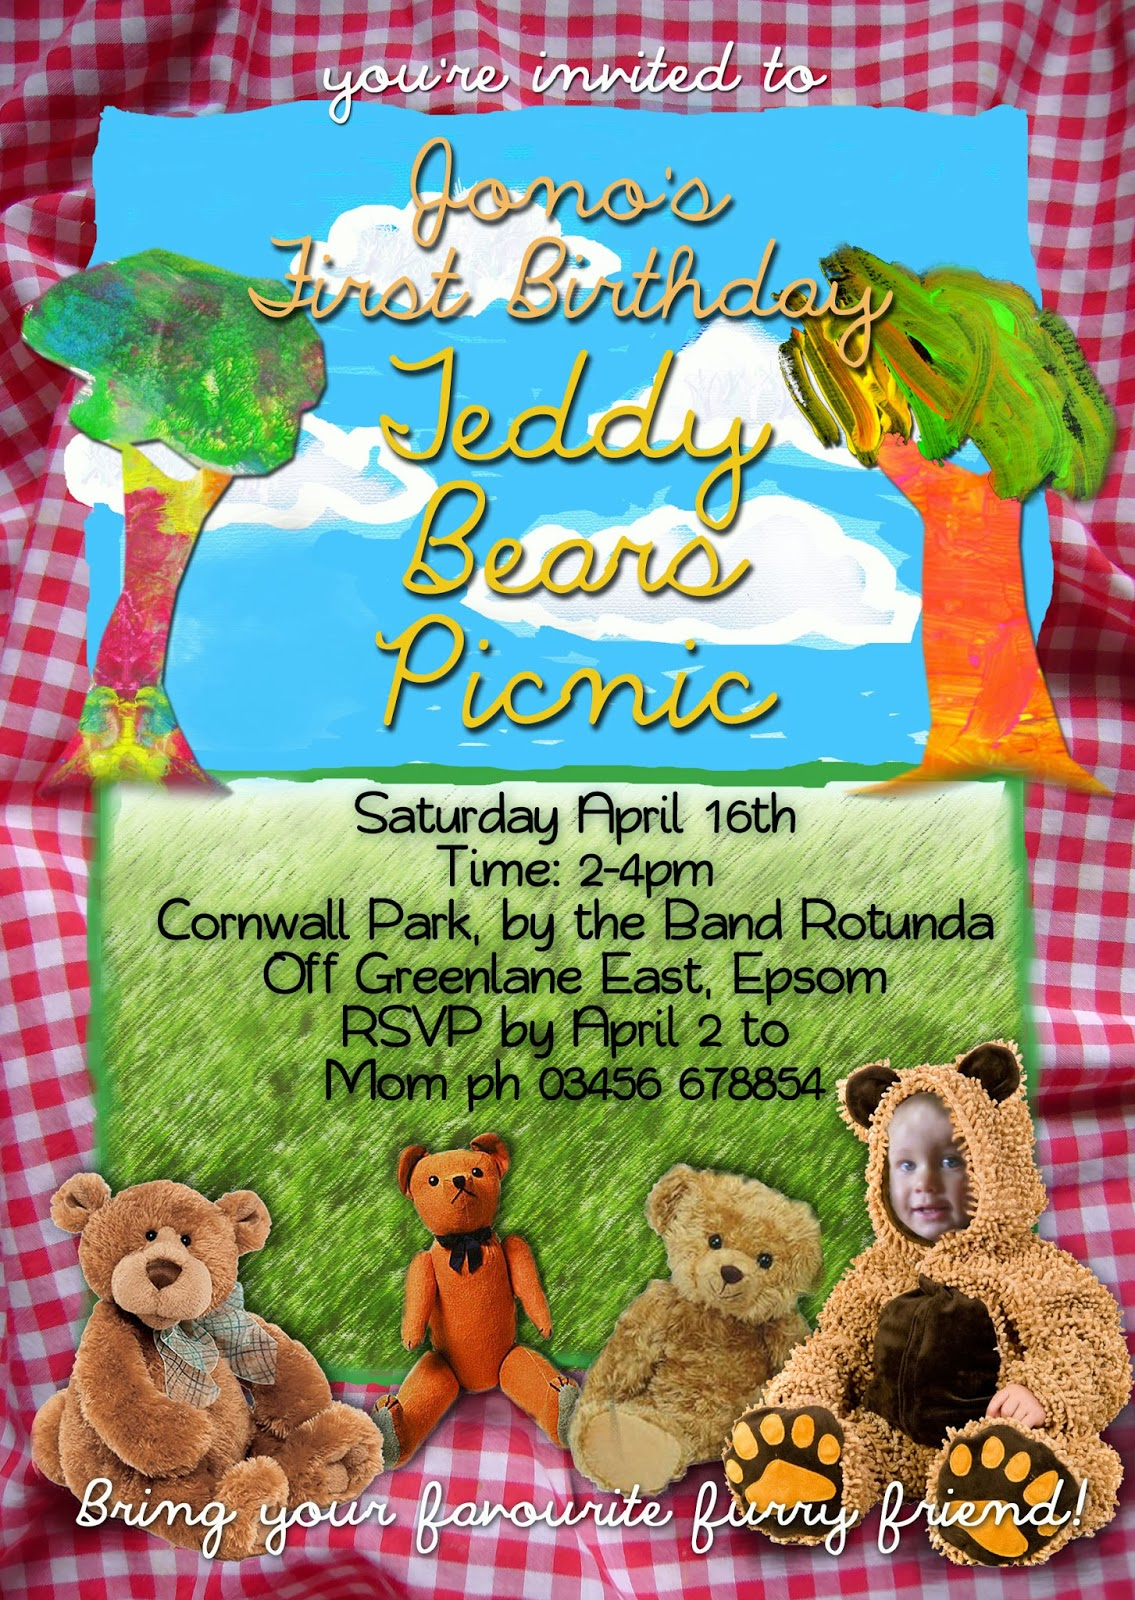 FREE Kids Party Invitations: Teddy Bears Picnic Invitation